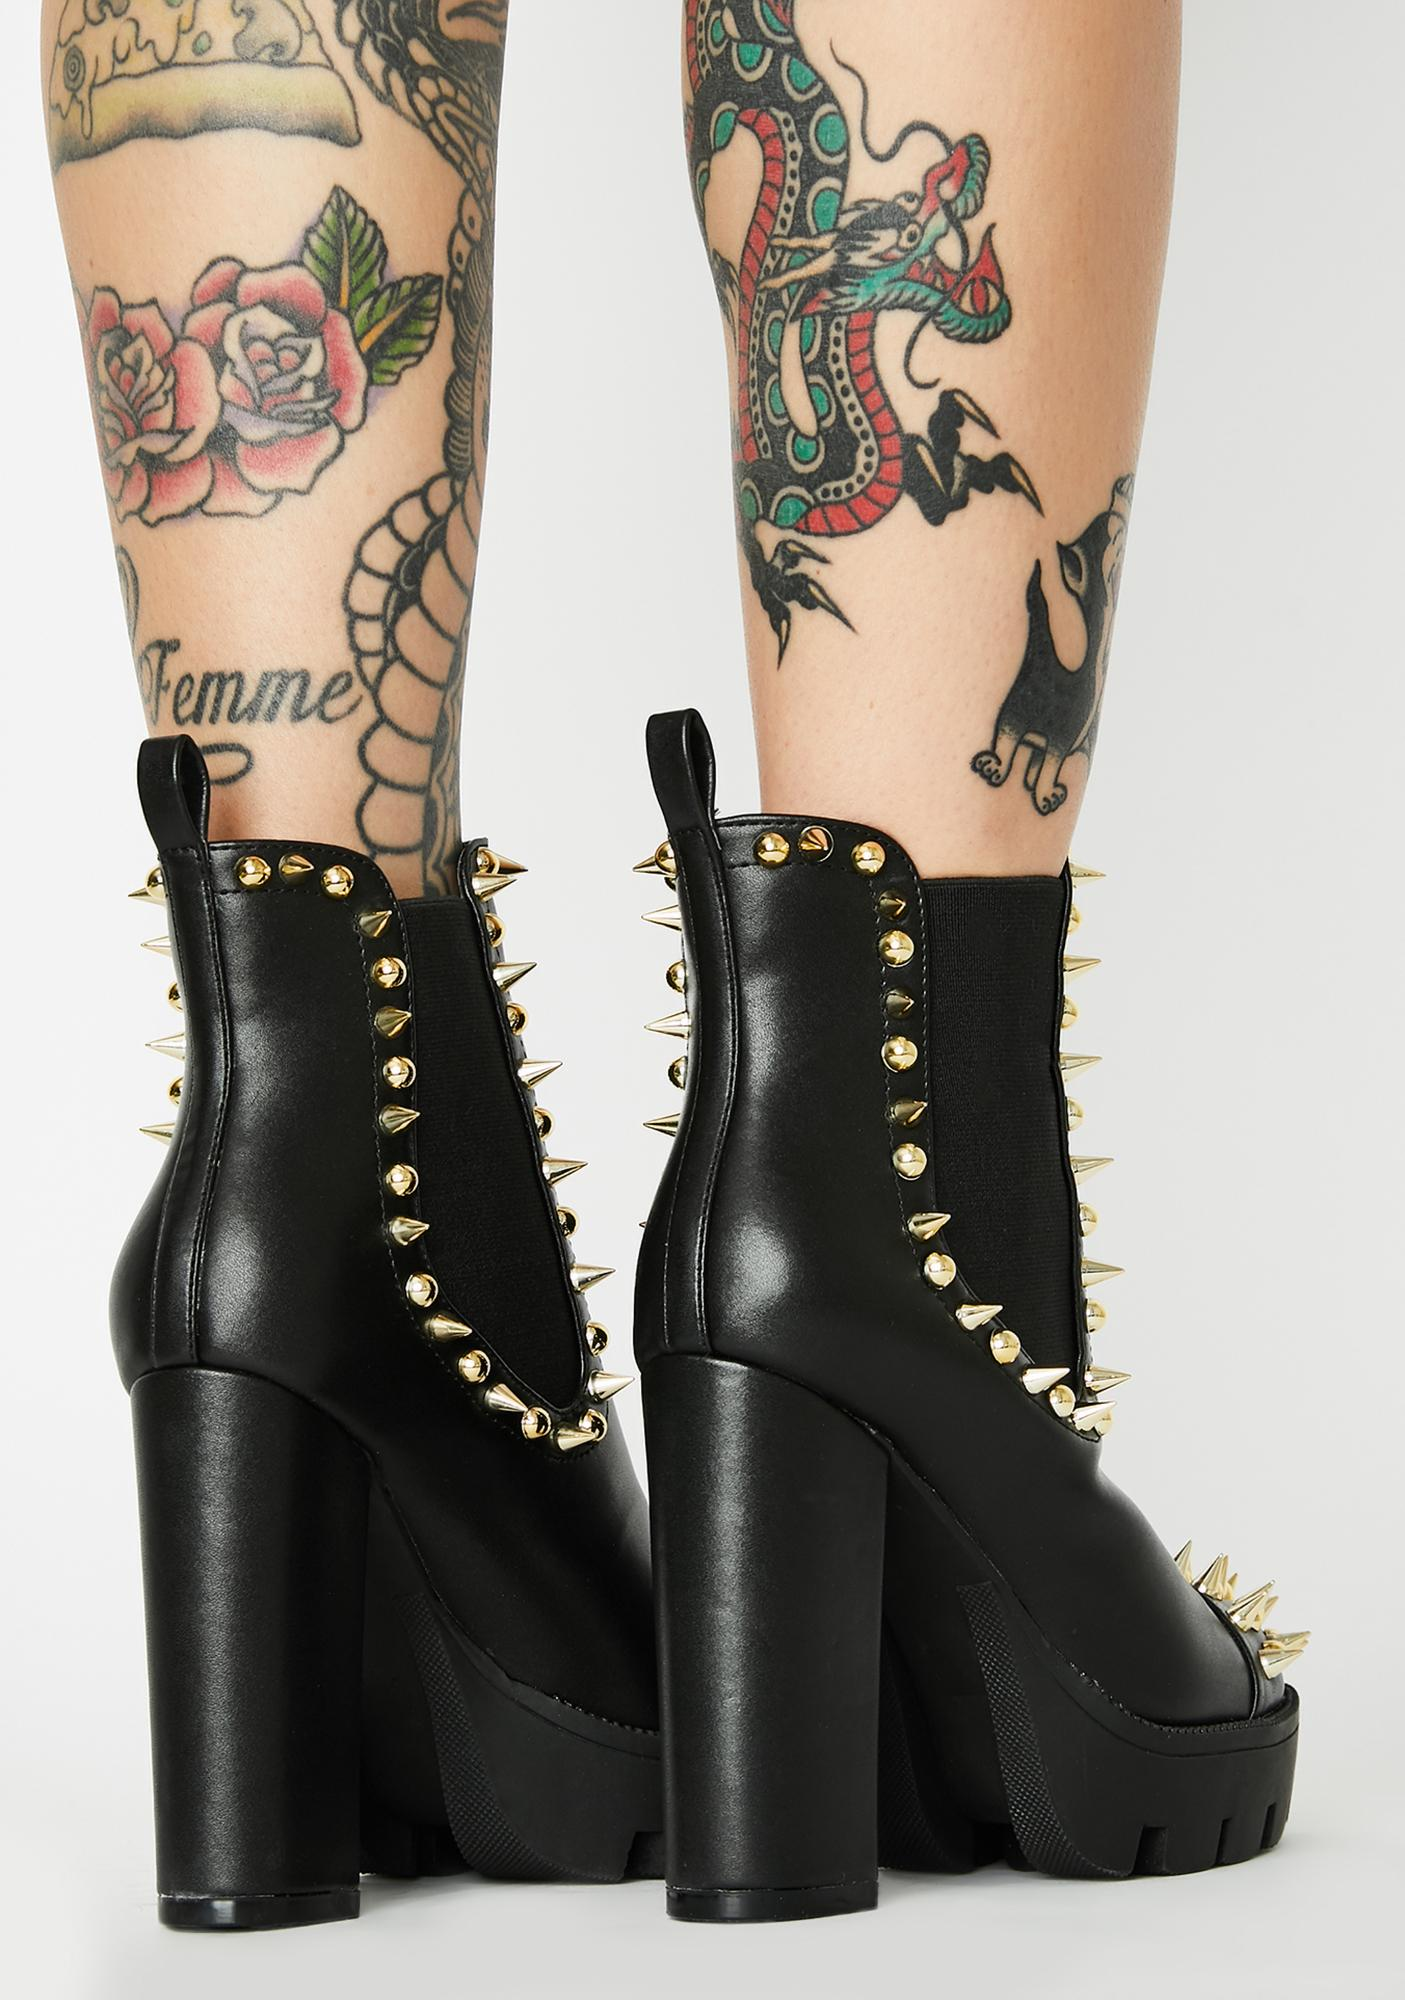 Royal Hellraisin' Hottie Spiked Booties